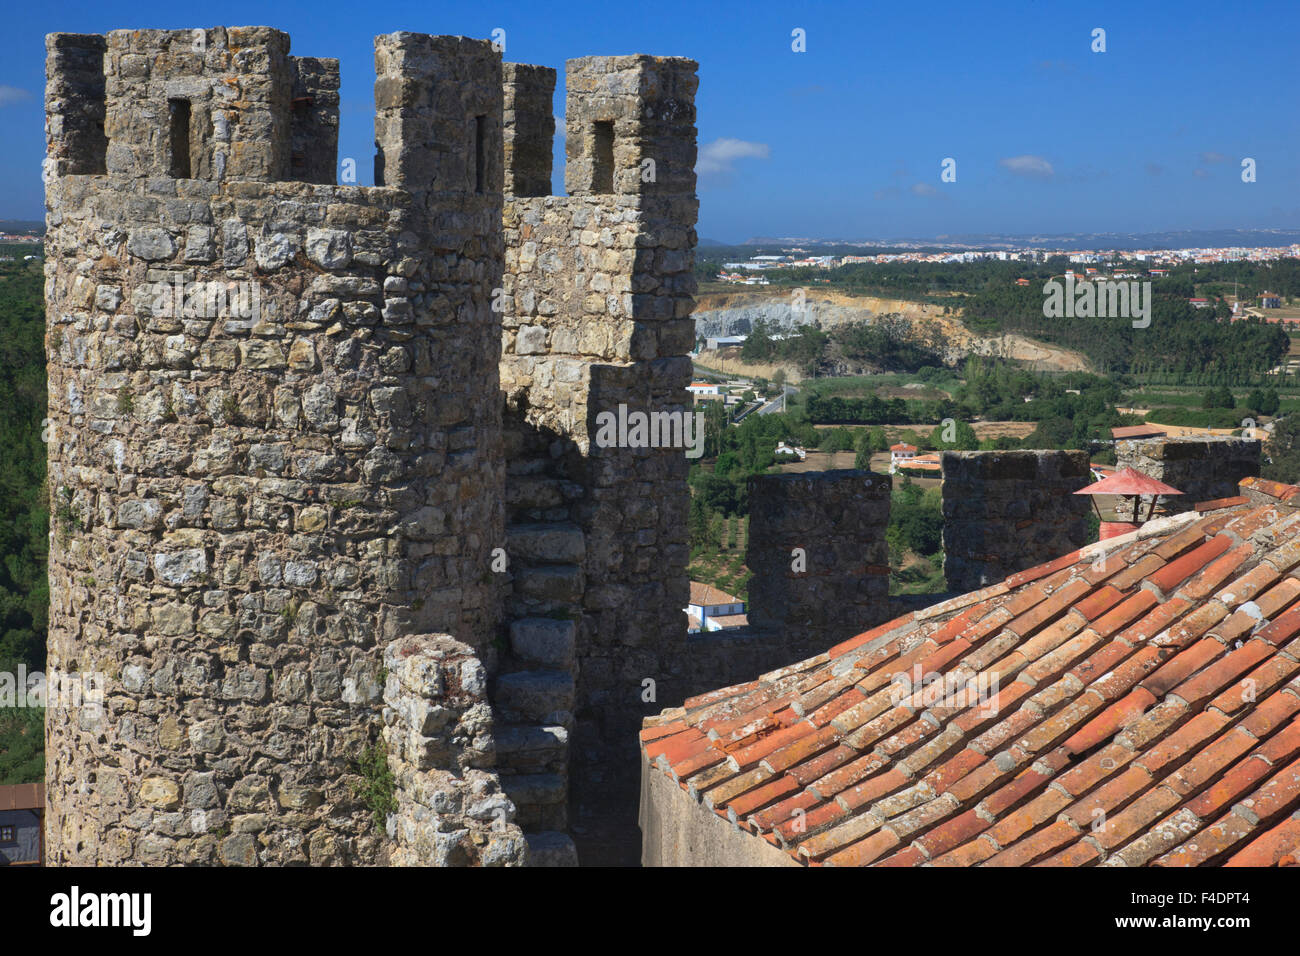 One of the many towers on the periphery of the fortress in Obidos. - Stock Image